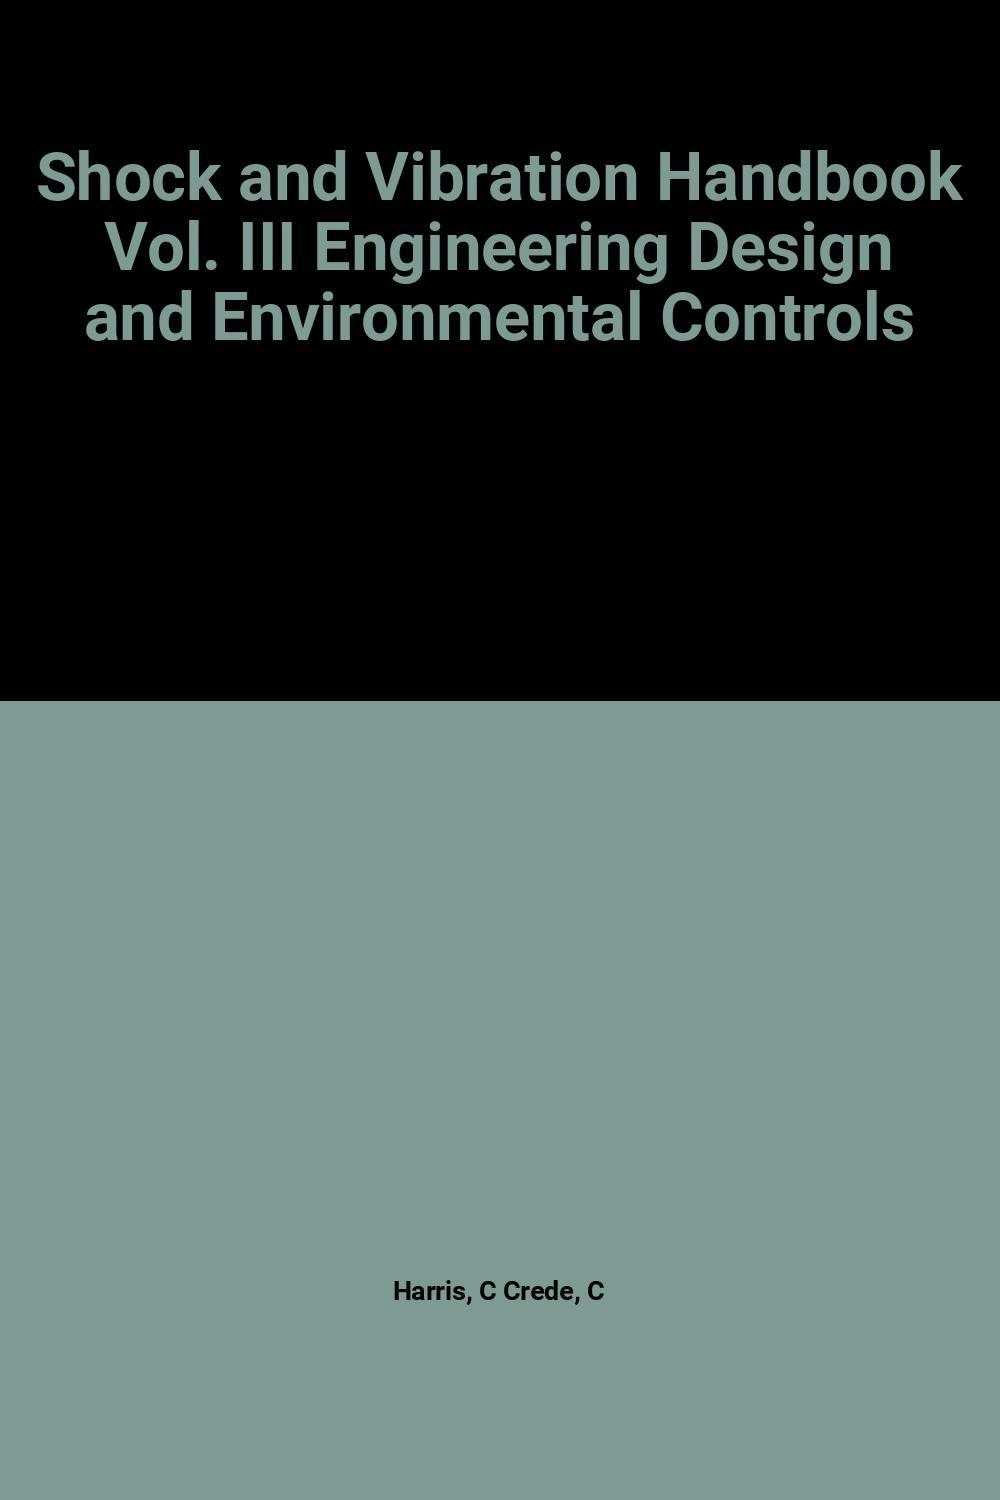 Shock and Vibration Handbook Vol. III Engineering Design and Environmental Controls C Crede Harris Near Fine Hardcover